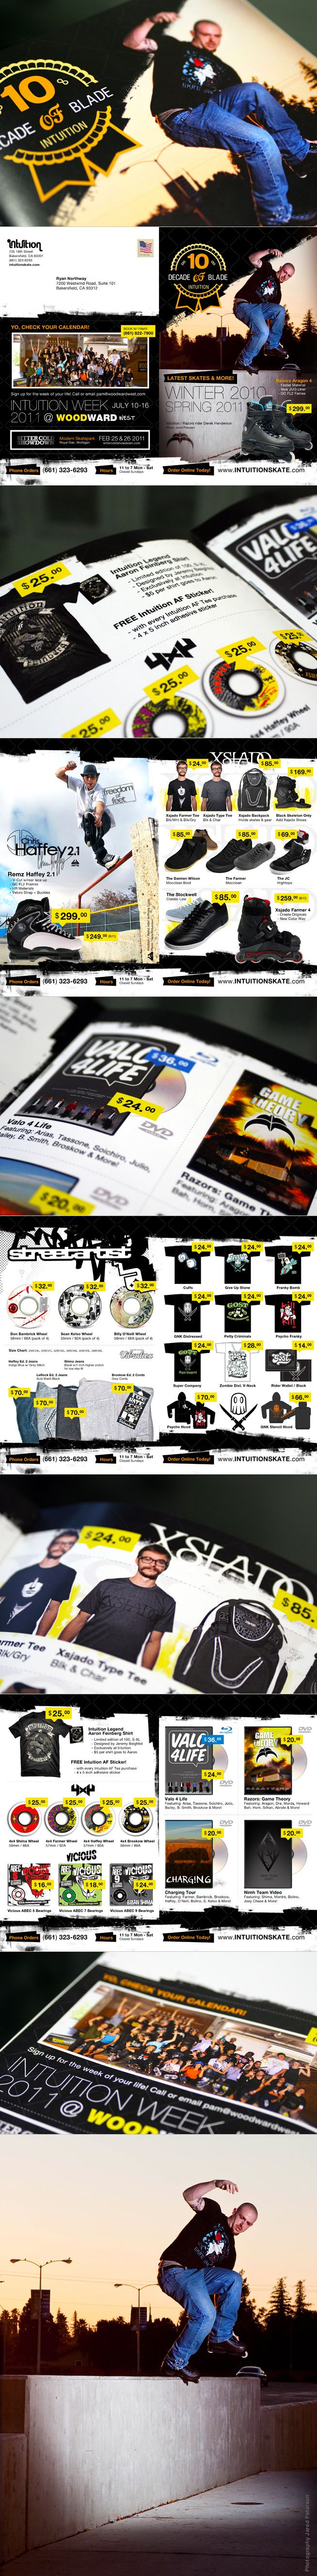 Intuition Skate Catalog